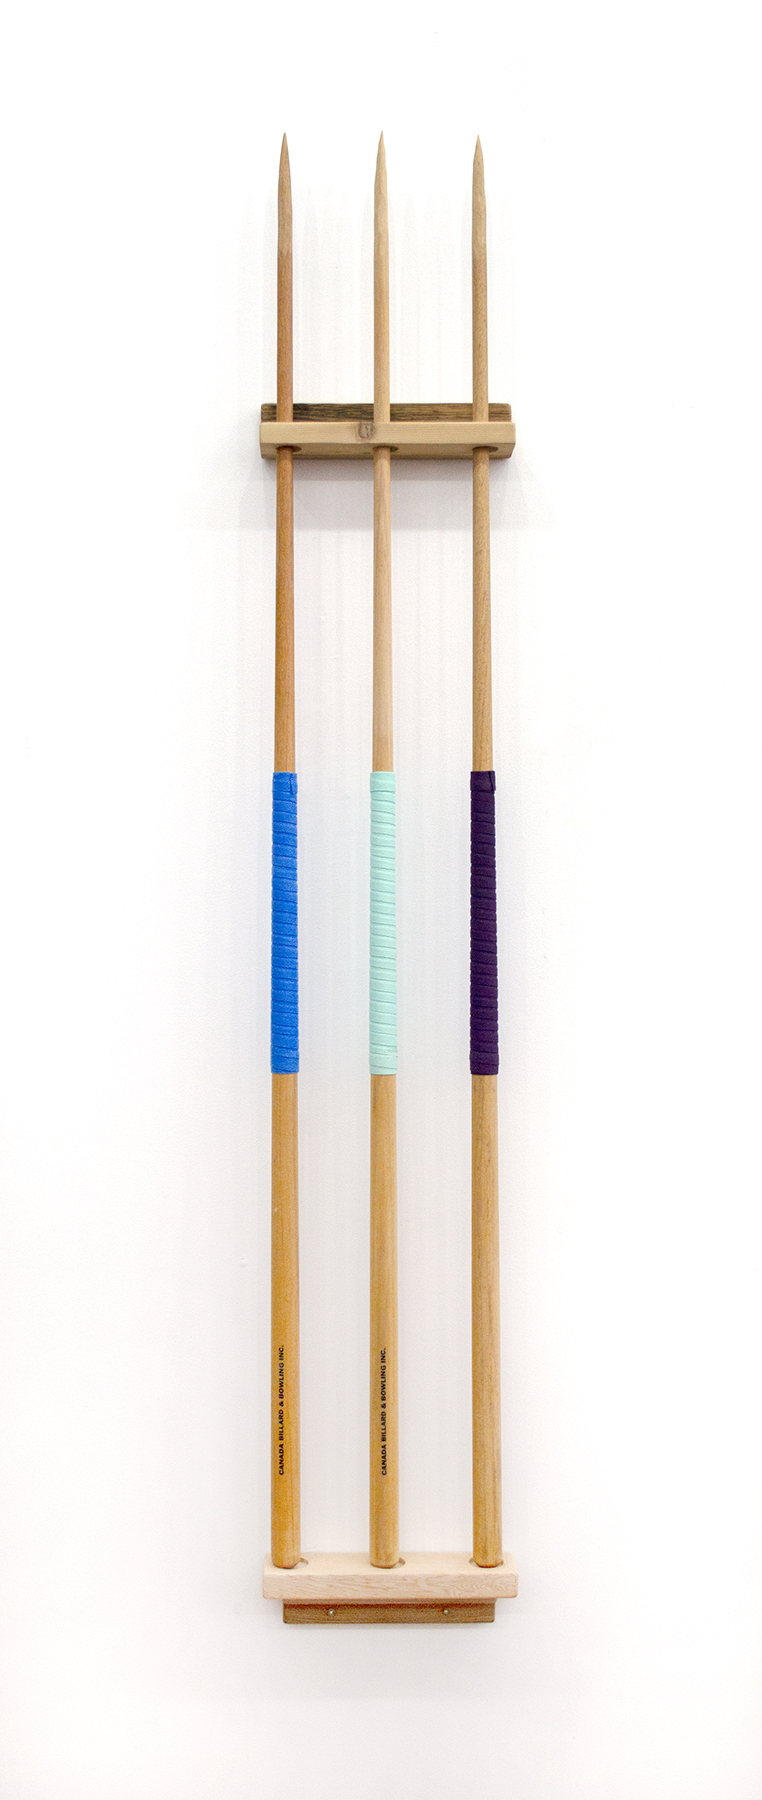 Spears (2), 2018